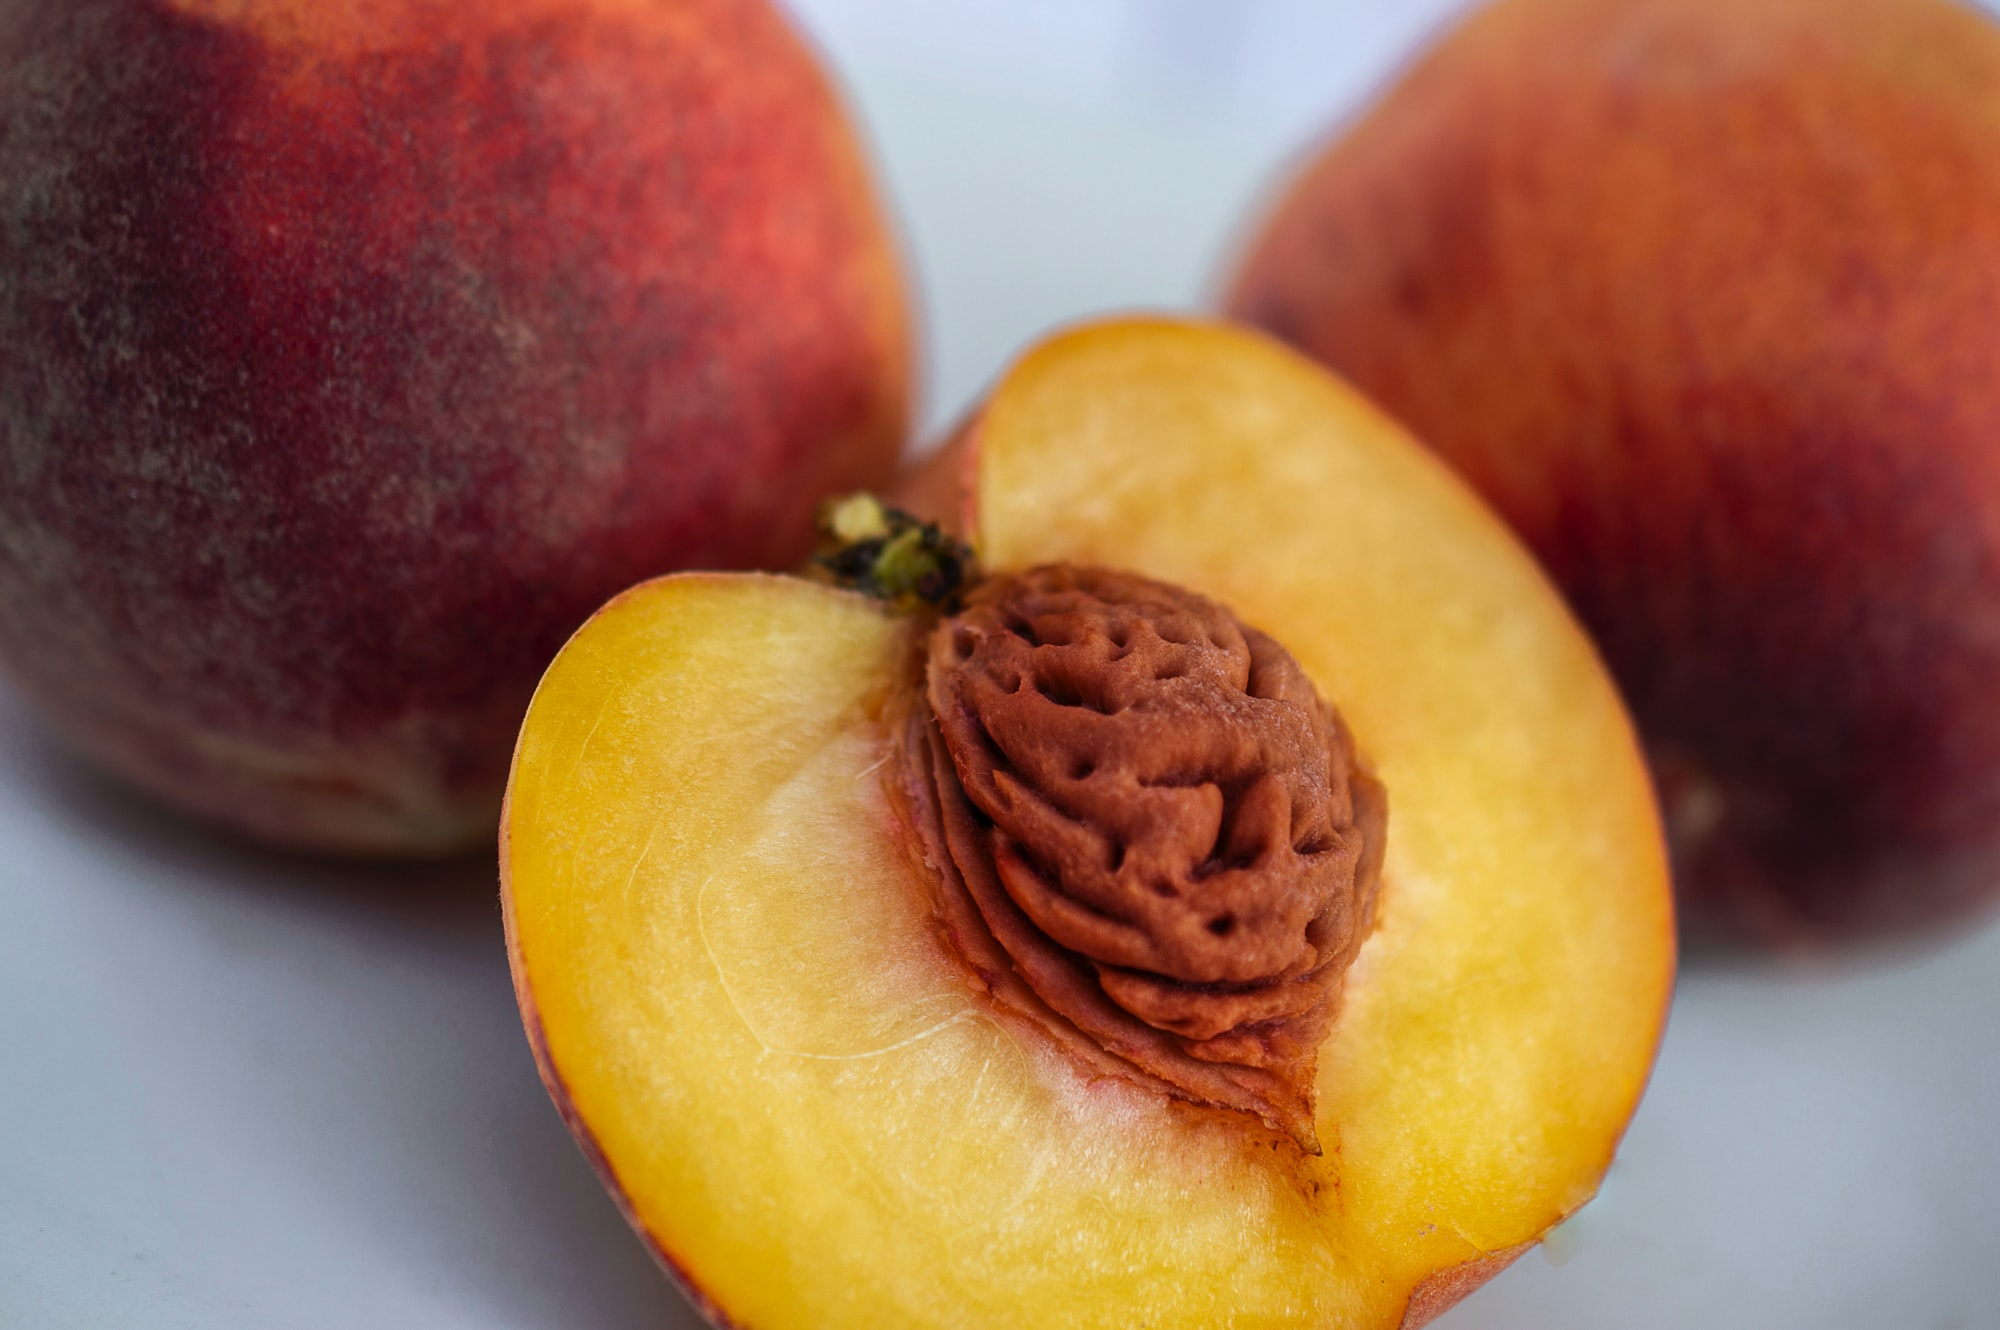 Are peaches and almonds related?